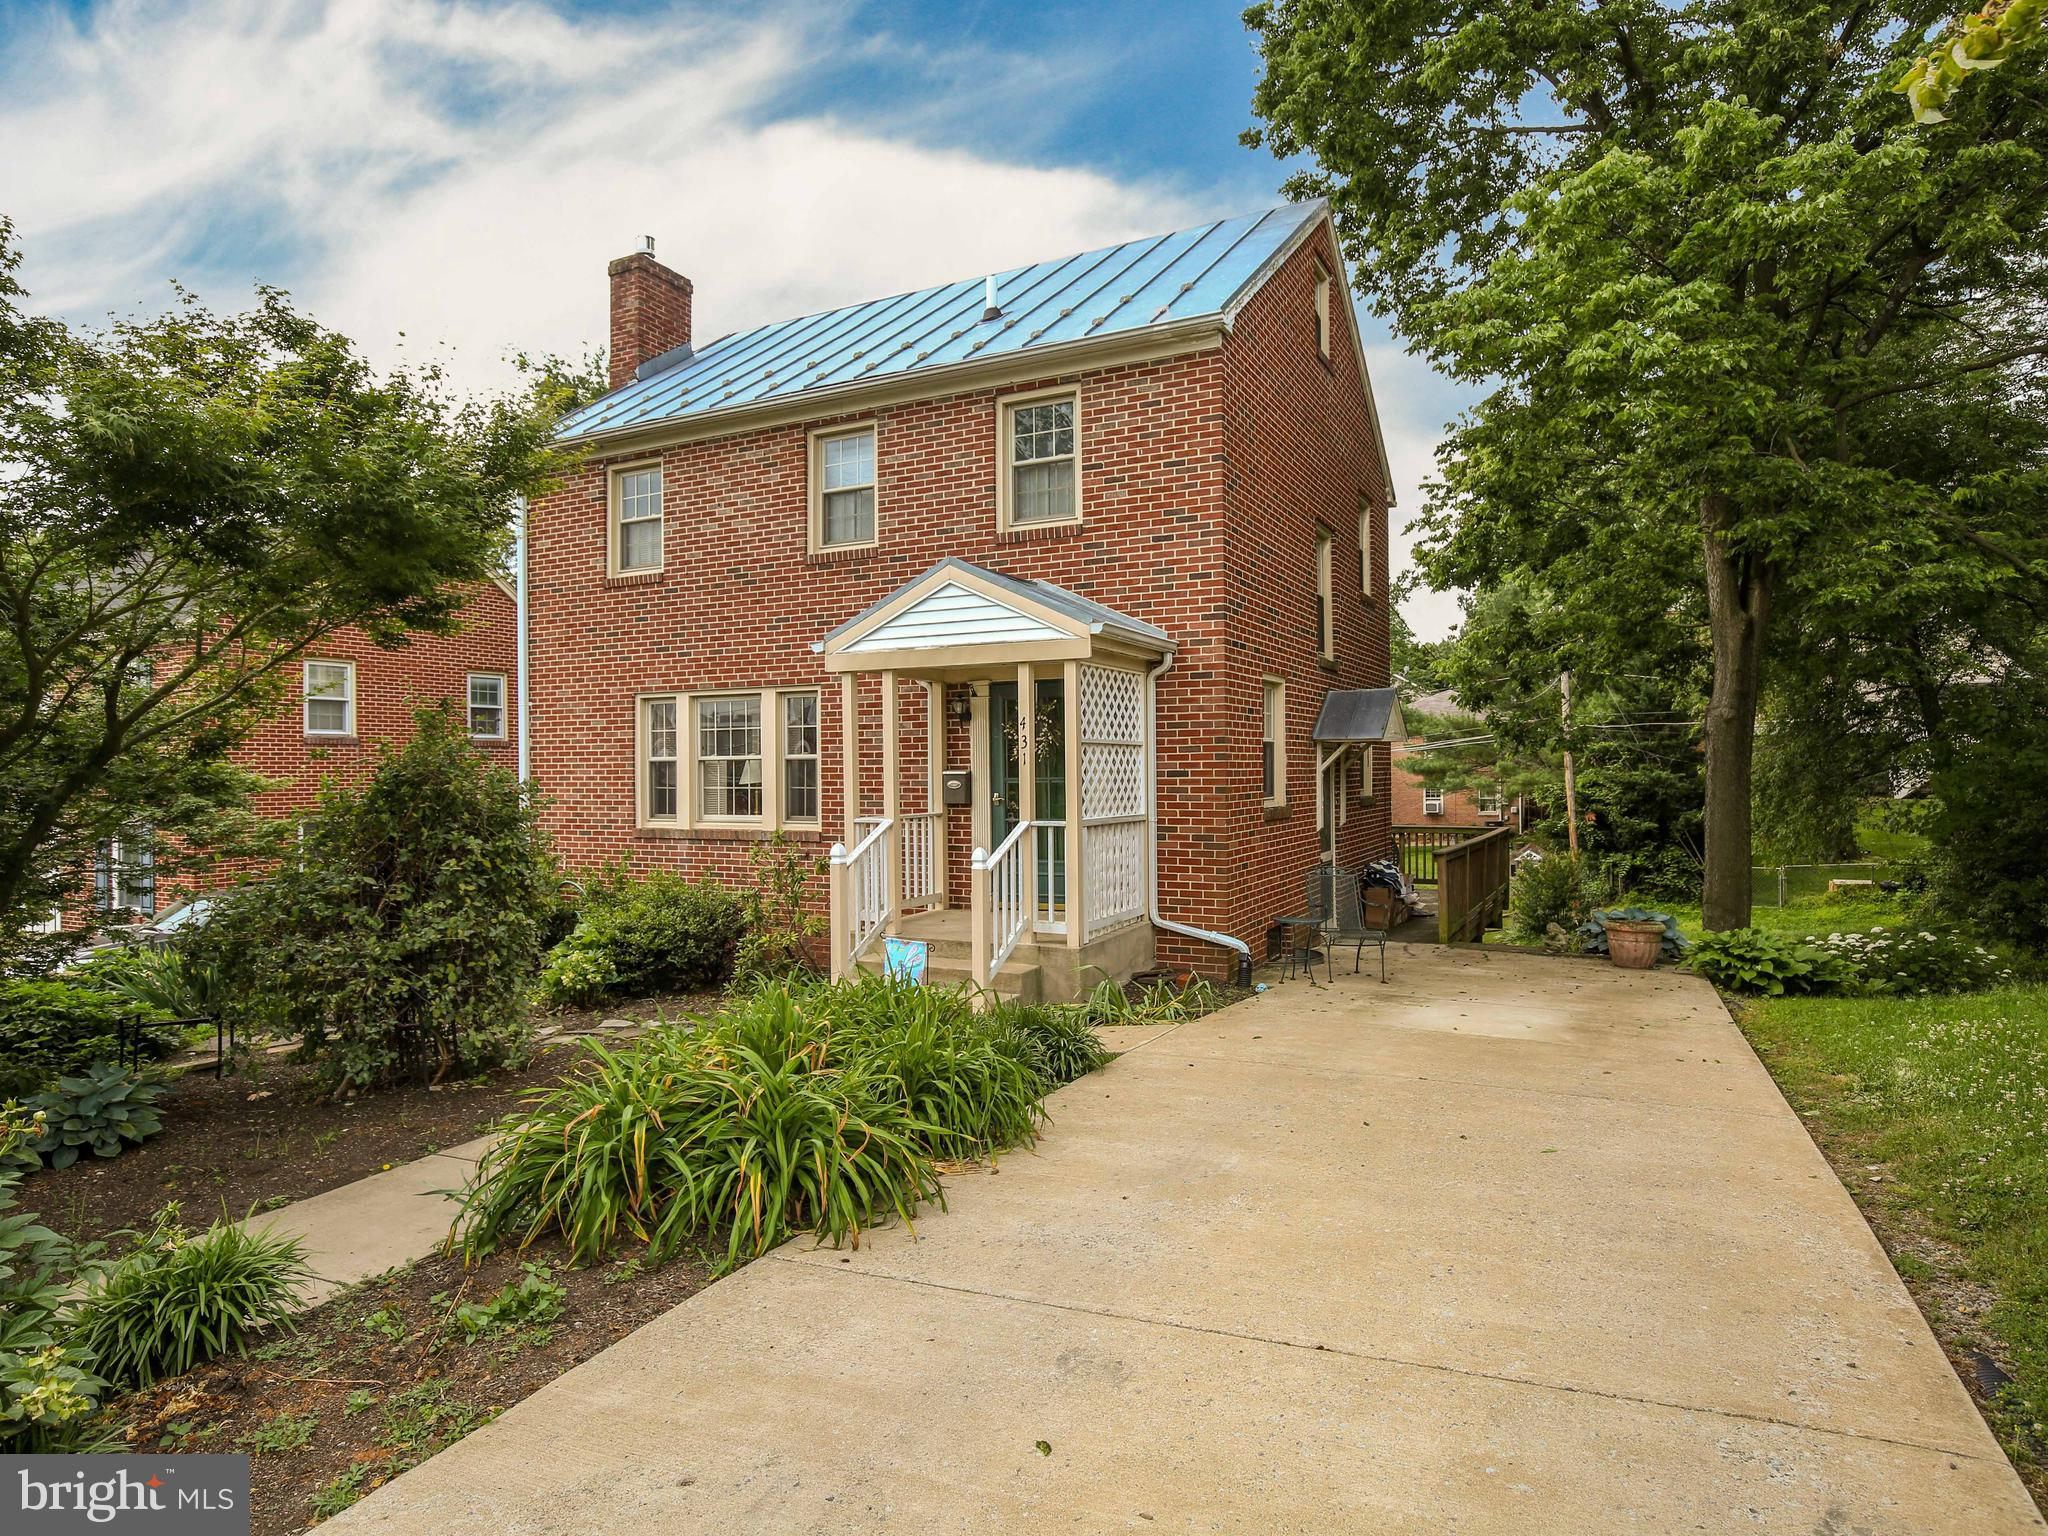 This lovely colonial is located in the heart of Winchester and is situated across  from the Handley High School campus.  Built in 1956, it has retained much of its original charm with all hardwood floors,  arched doorways, and built-ins.  The full bath on the upper level has been updated with a large walk-in shower.  The sunroom located in the rear of the home boasts  vaulted ceiling and windows galore which overlook beautiful gardens, with flowering shrubs, trees, and numerous  blooming flowers, which the seller has lovingly planted and cared for through the years.  Extensive hardscapes such as brick walkways, patios, and stone wall in the rear gardens.   A new gas fired hot water boiler was installed in 2017.  New vinyl windows have been installed throughout the home.  The washer/dryer have been located to the main level of the home, but can easily be moved back to the lower level to return the dining area to its original size.   Conveniently located for shopping and dining in downtown Winchester.